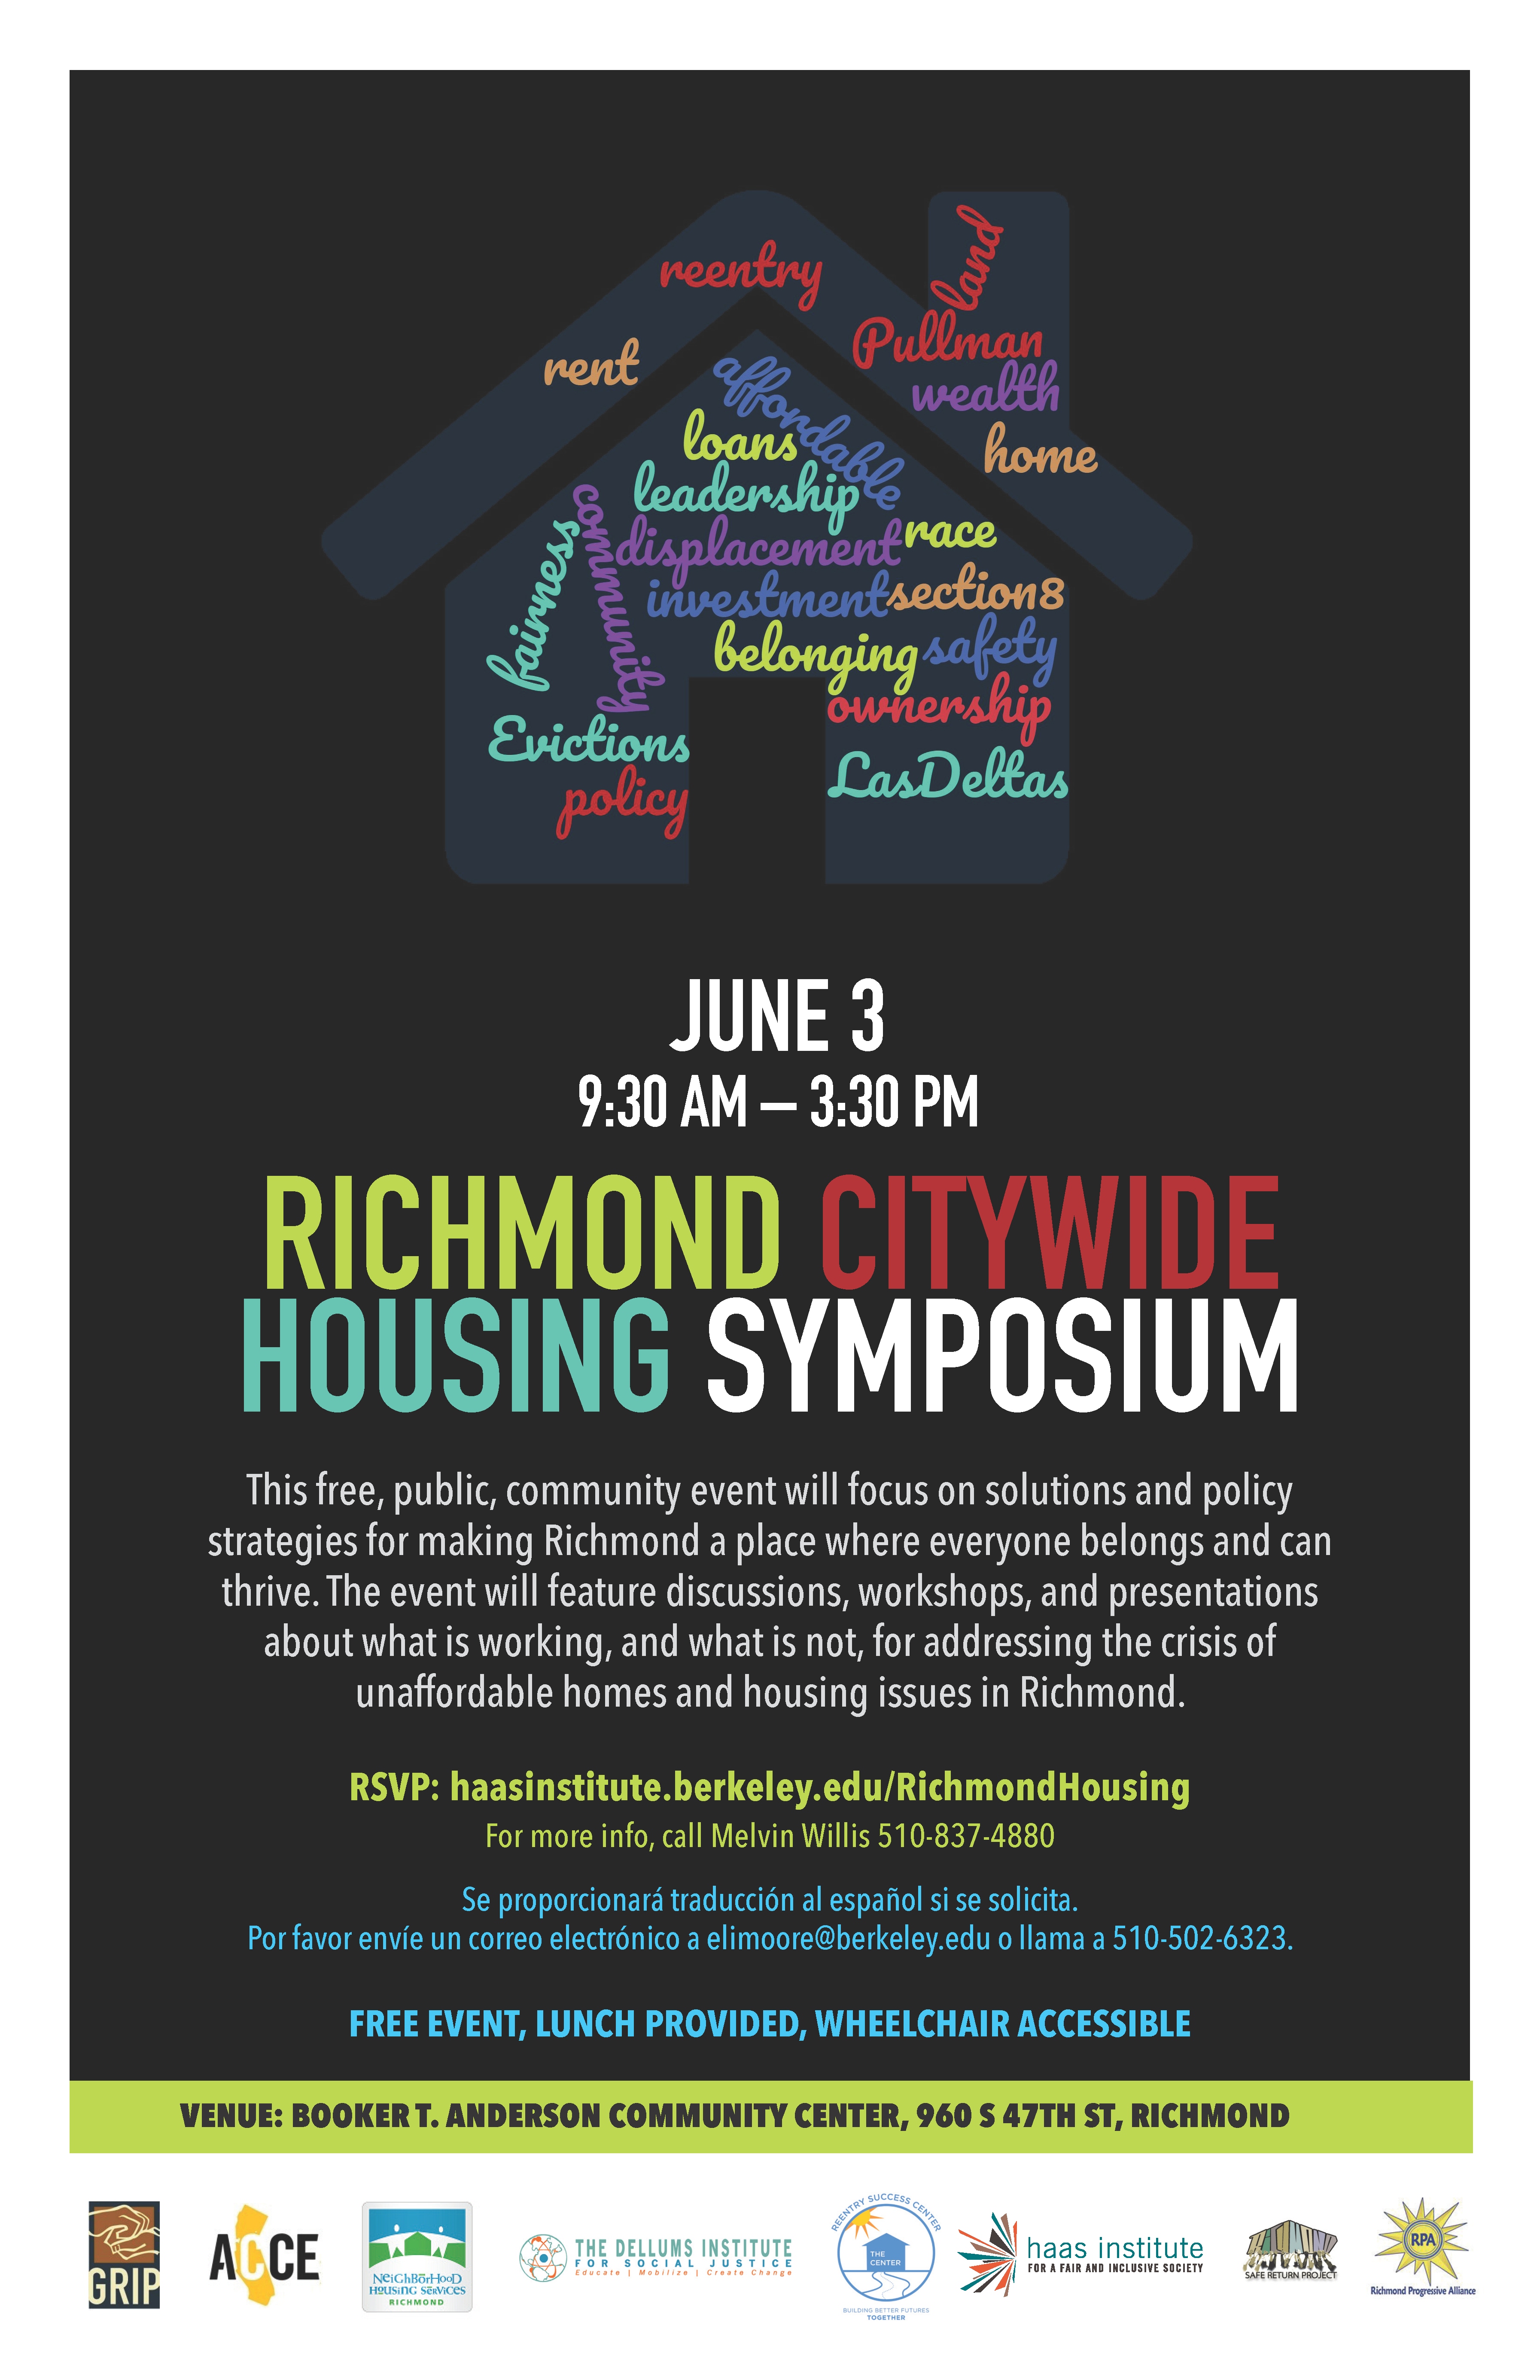 Richmond Citywide Housing Symposium